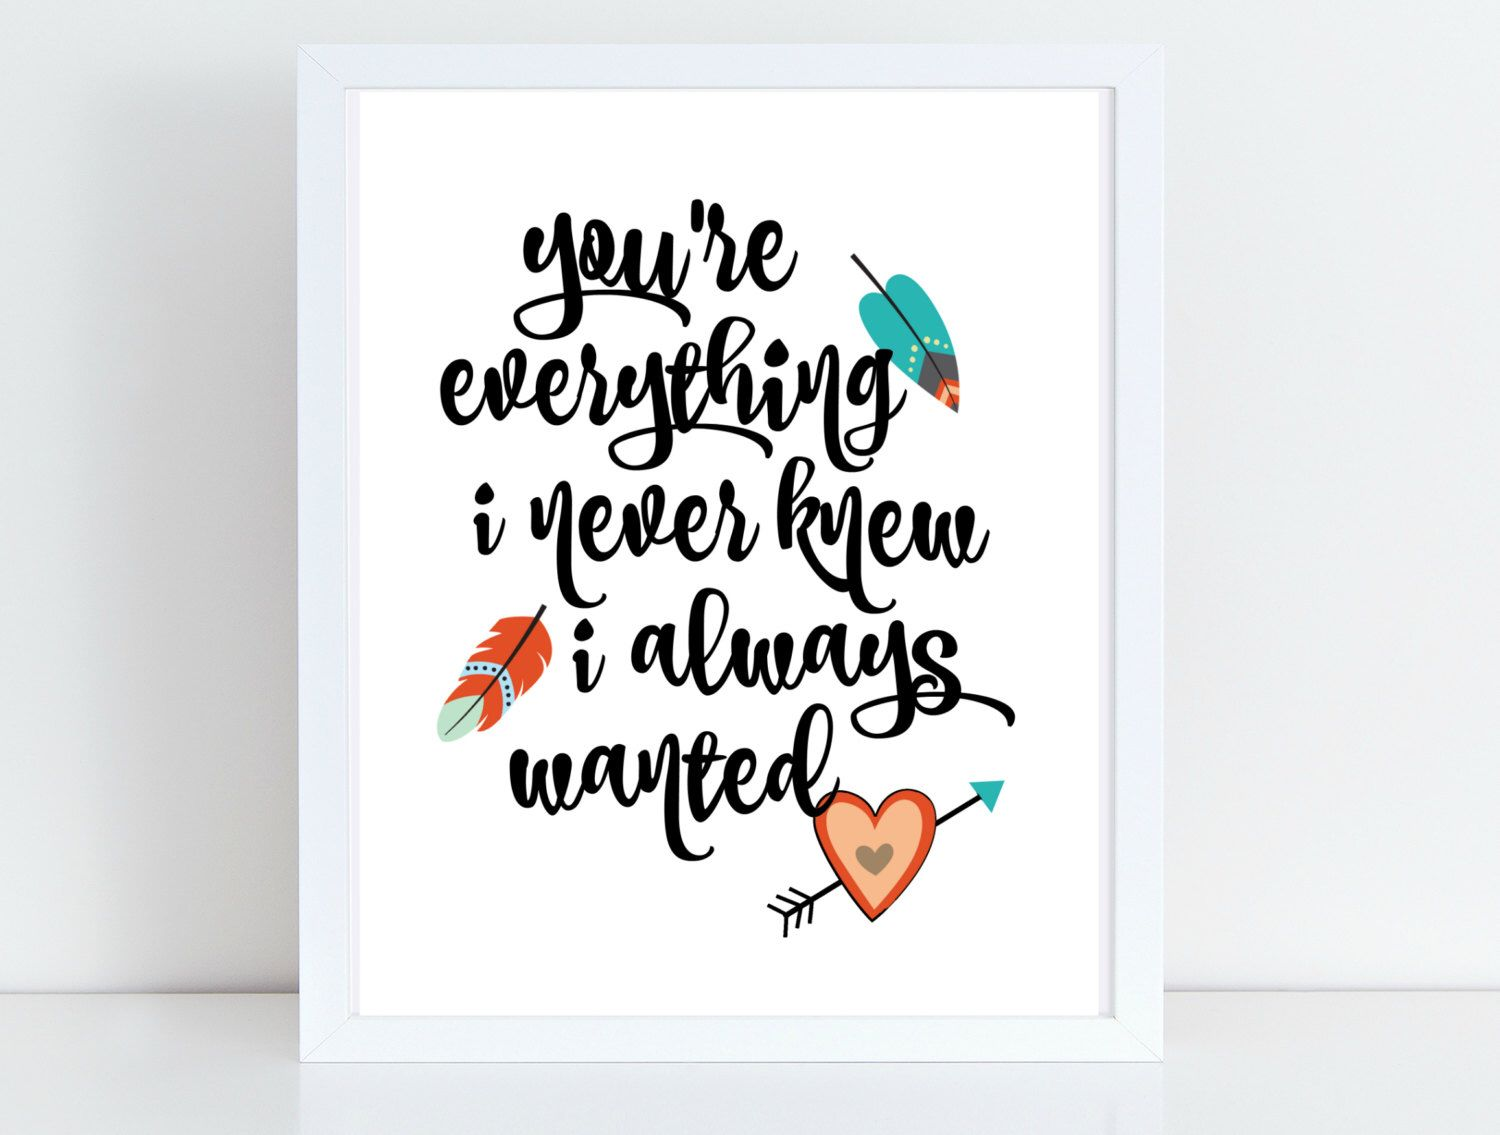 You're everything I never knew I wanted- Tribal Woodland Animals feathers & heart- Nursery/Childrens's Print Art- No Frame- instant download by ATidBit on Etsy https://www.etsy.com/listing/468777957/youre-everything-i-never-knew-i-wanted